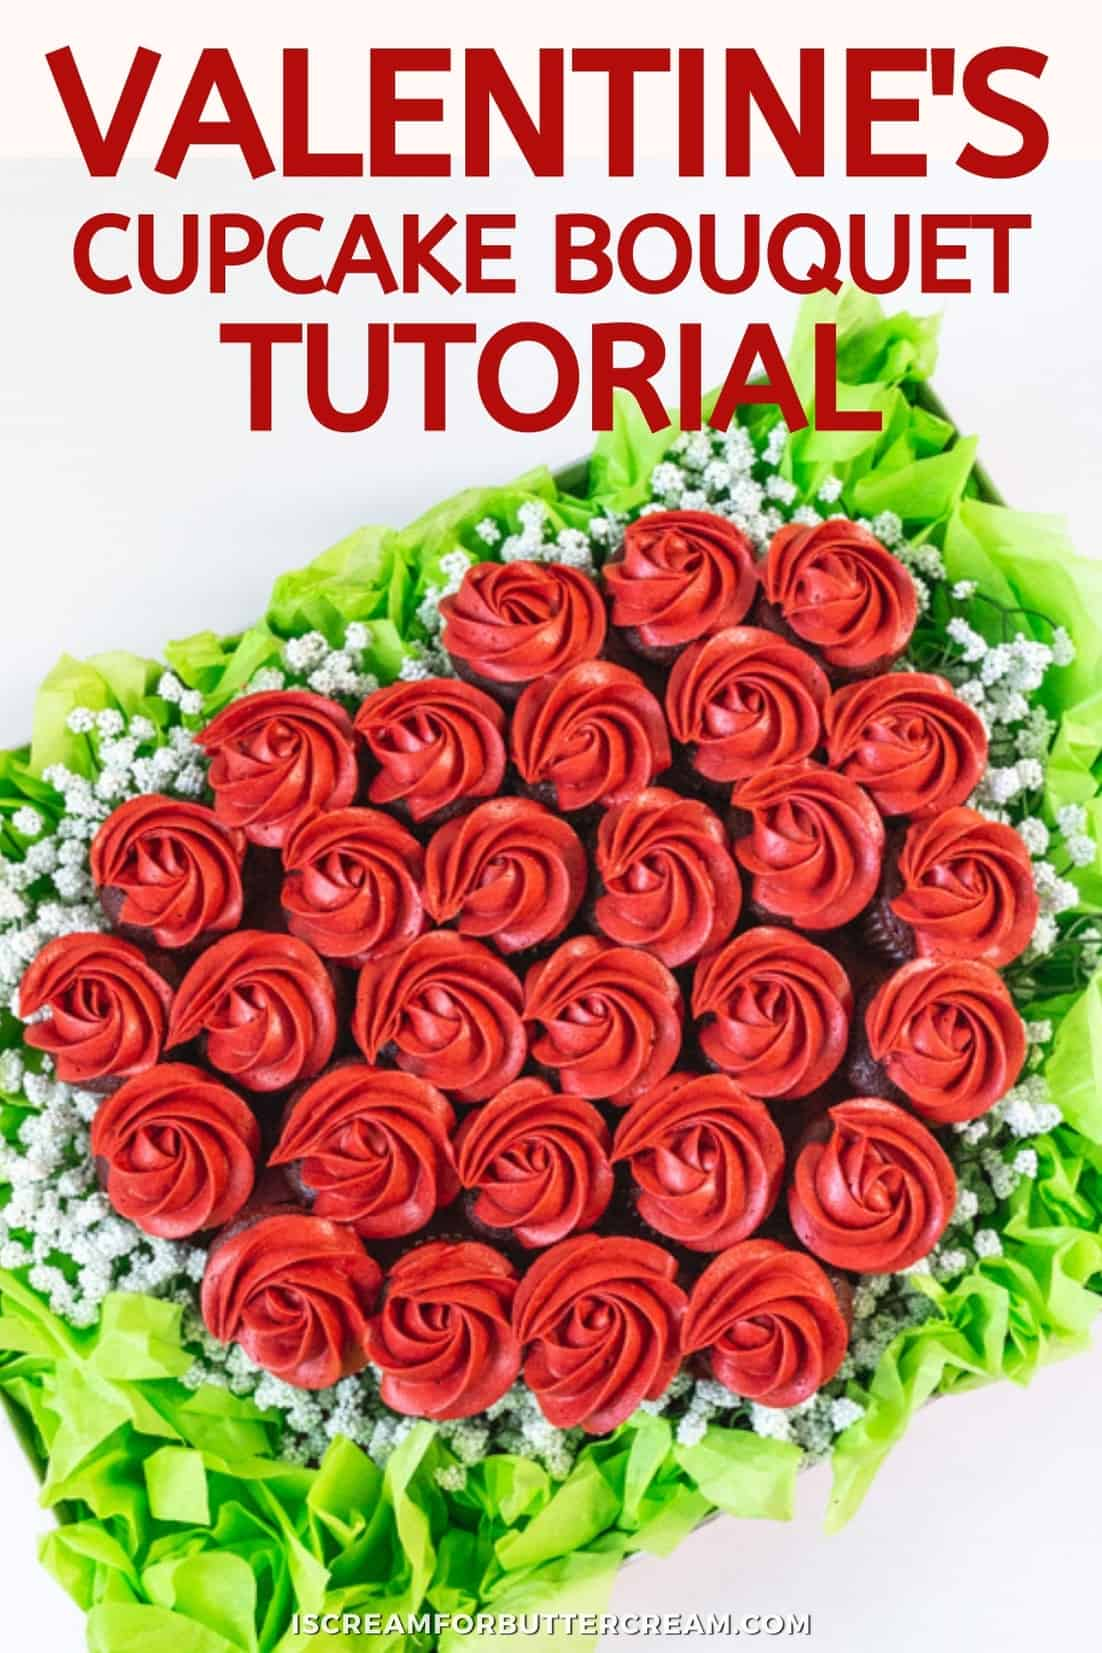 Easy Valentine's Cupcake Bouquet in a Box Pinterest graphic